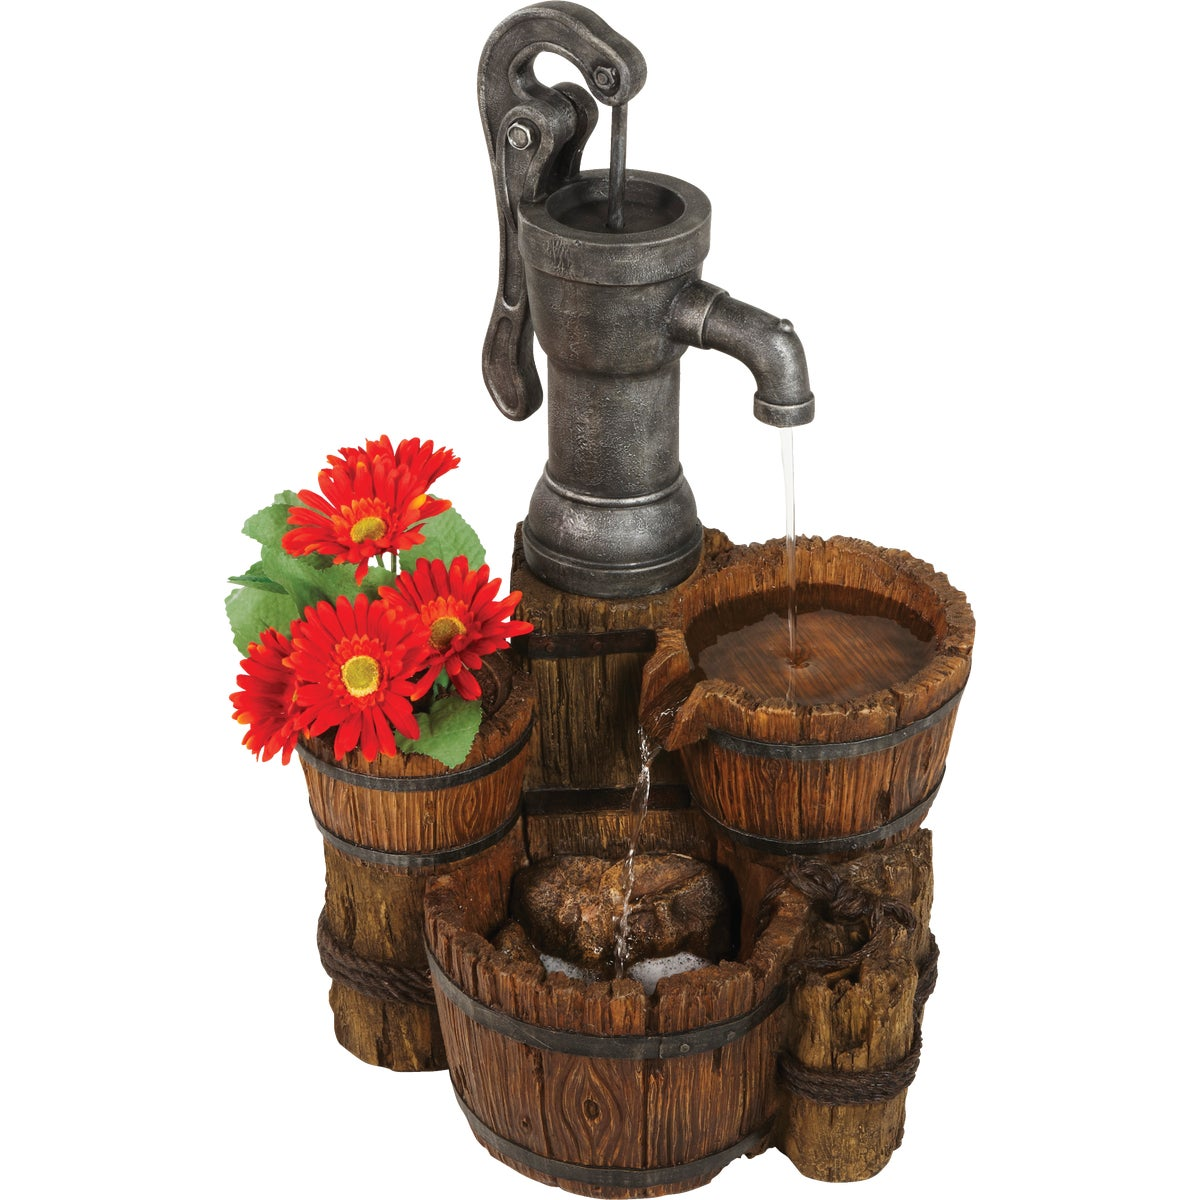 WATERPUMP PLNTR FOUNTAIN - WXFO2963 by Do it Best